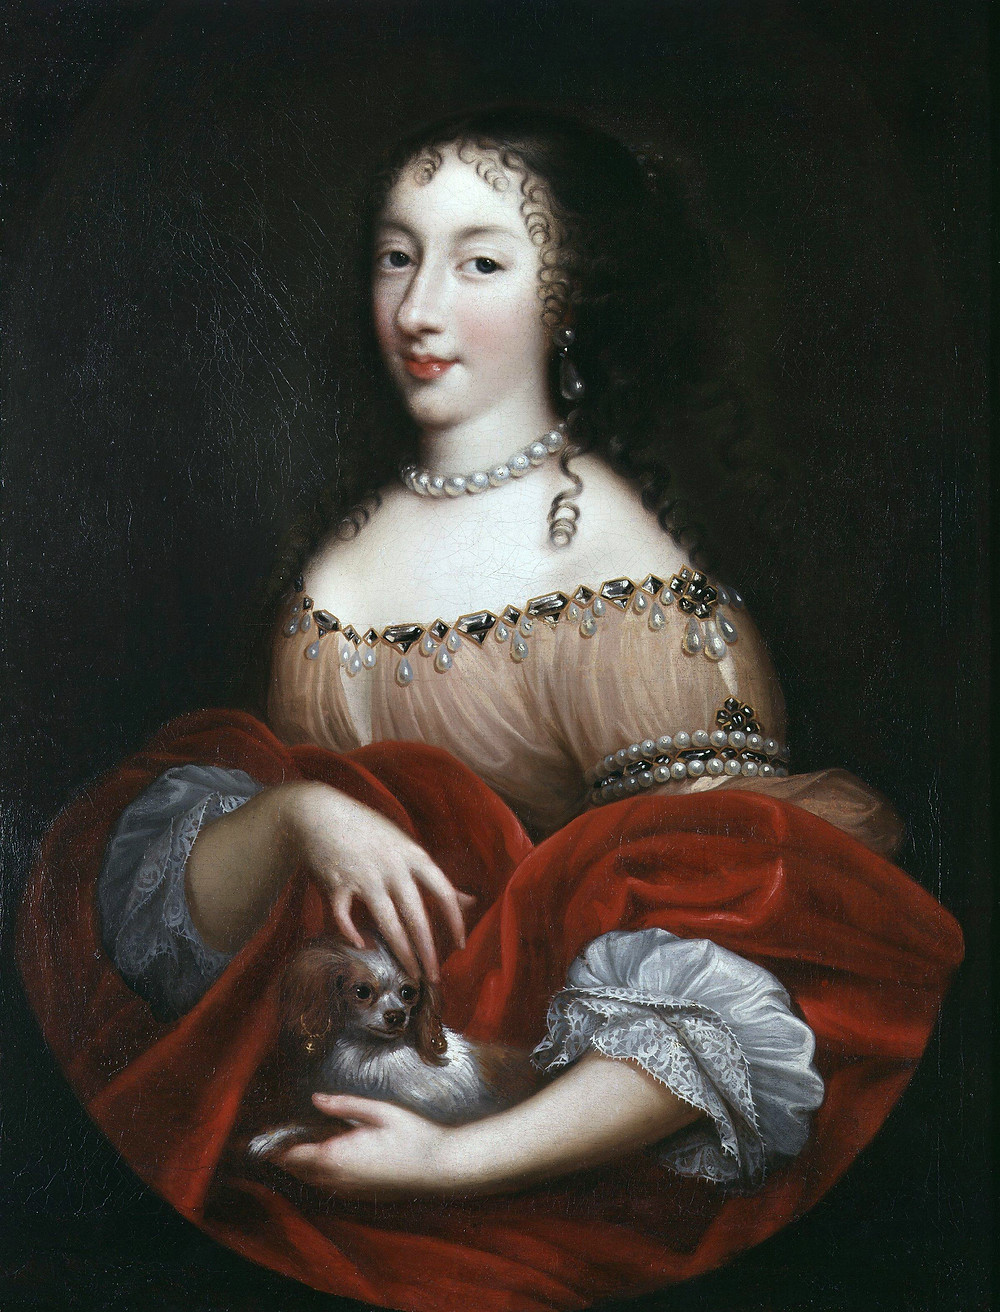 Mignard, possibly after - Henrietta of England - National Portrait Gallery